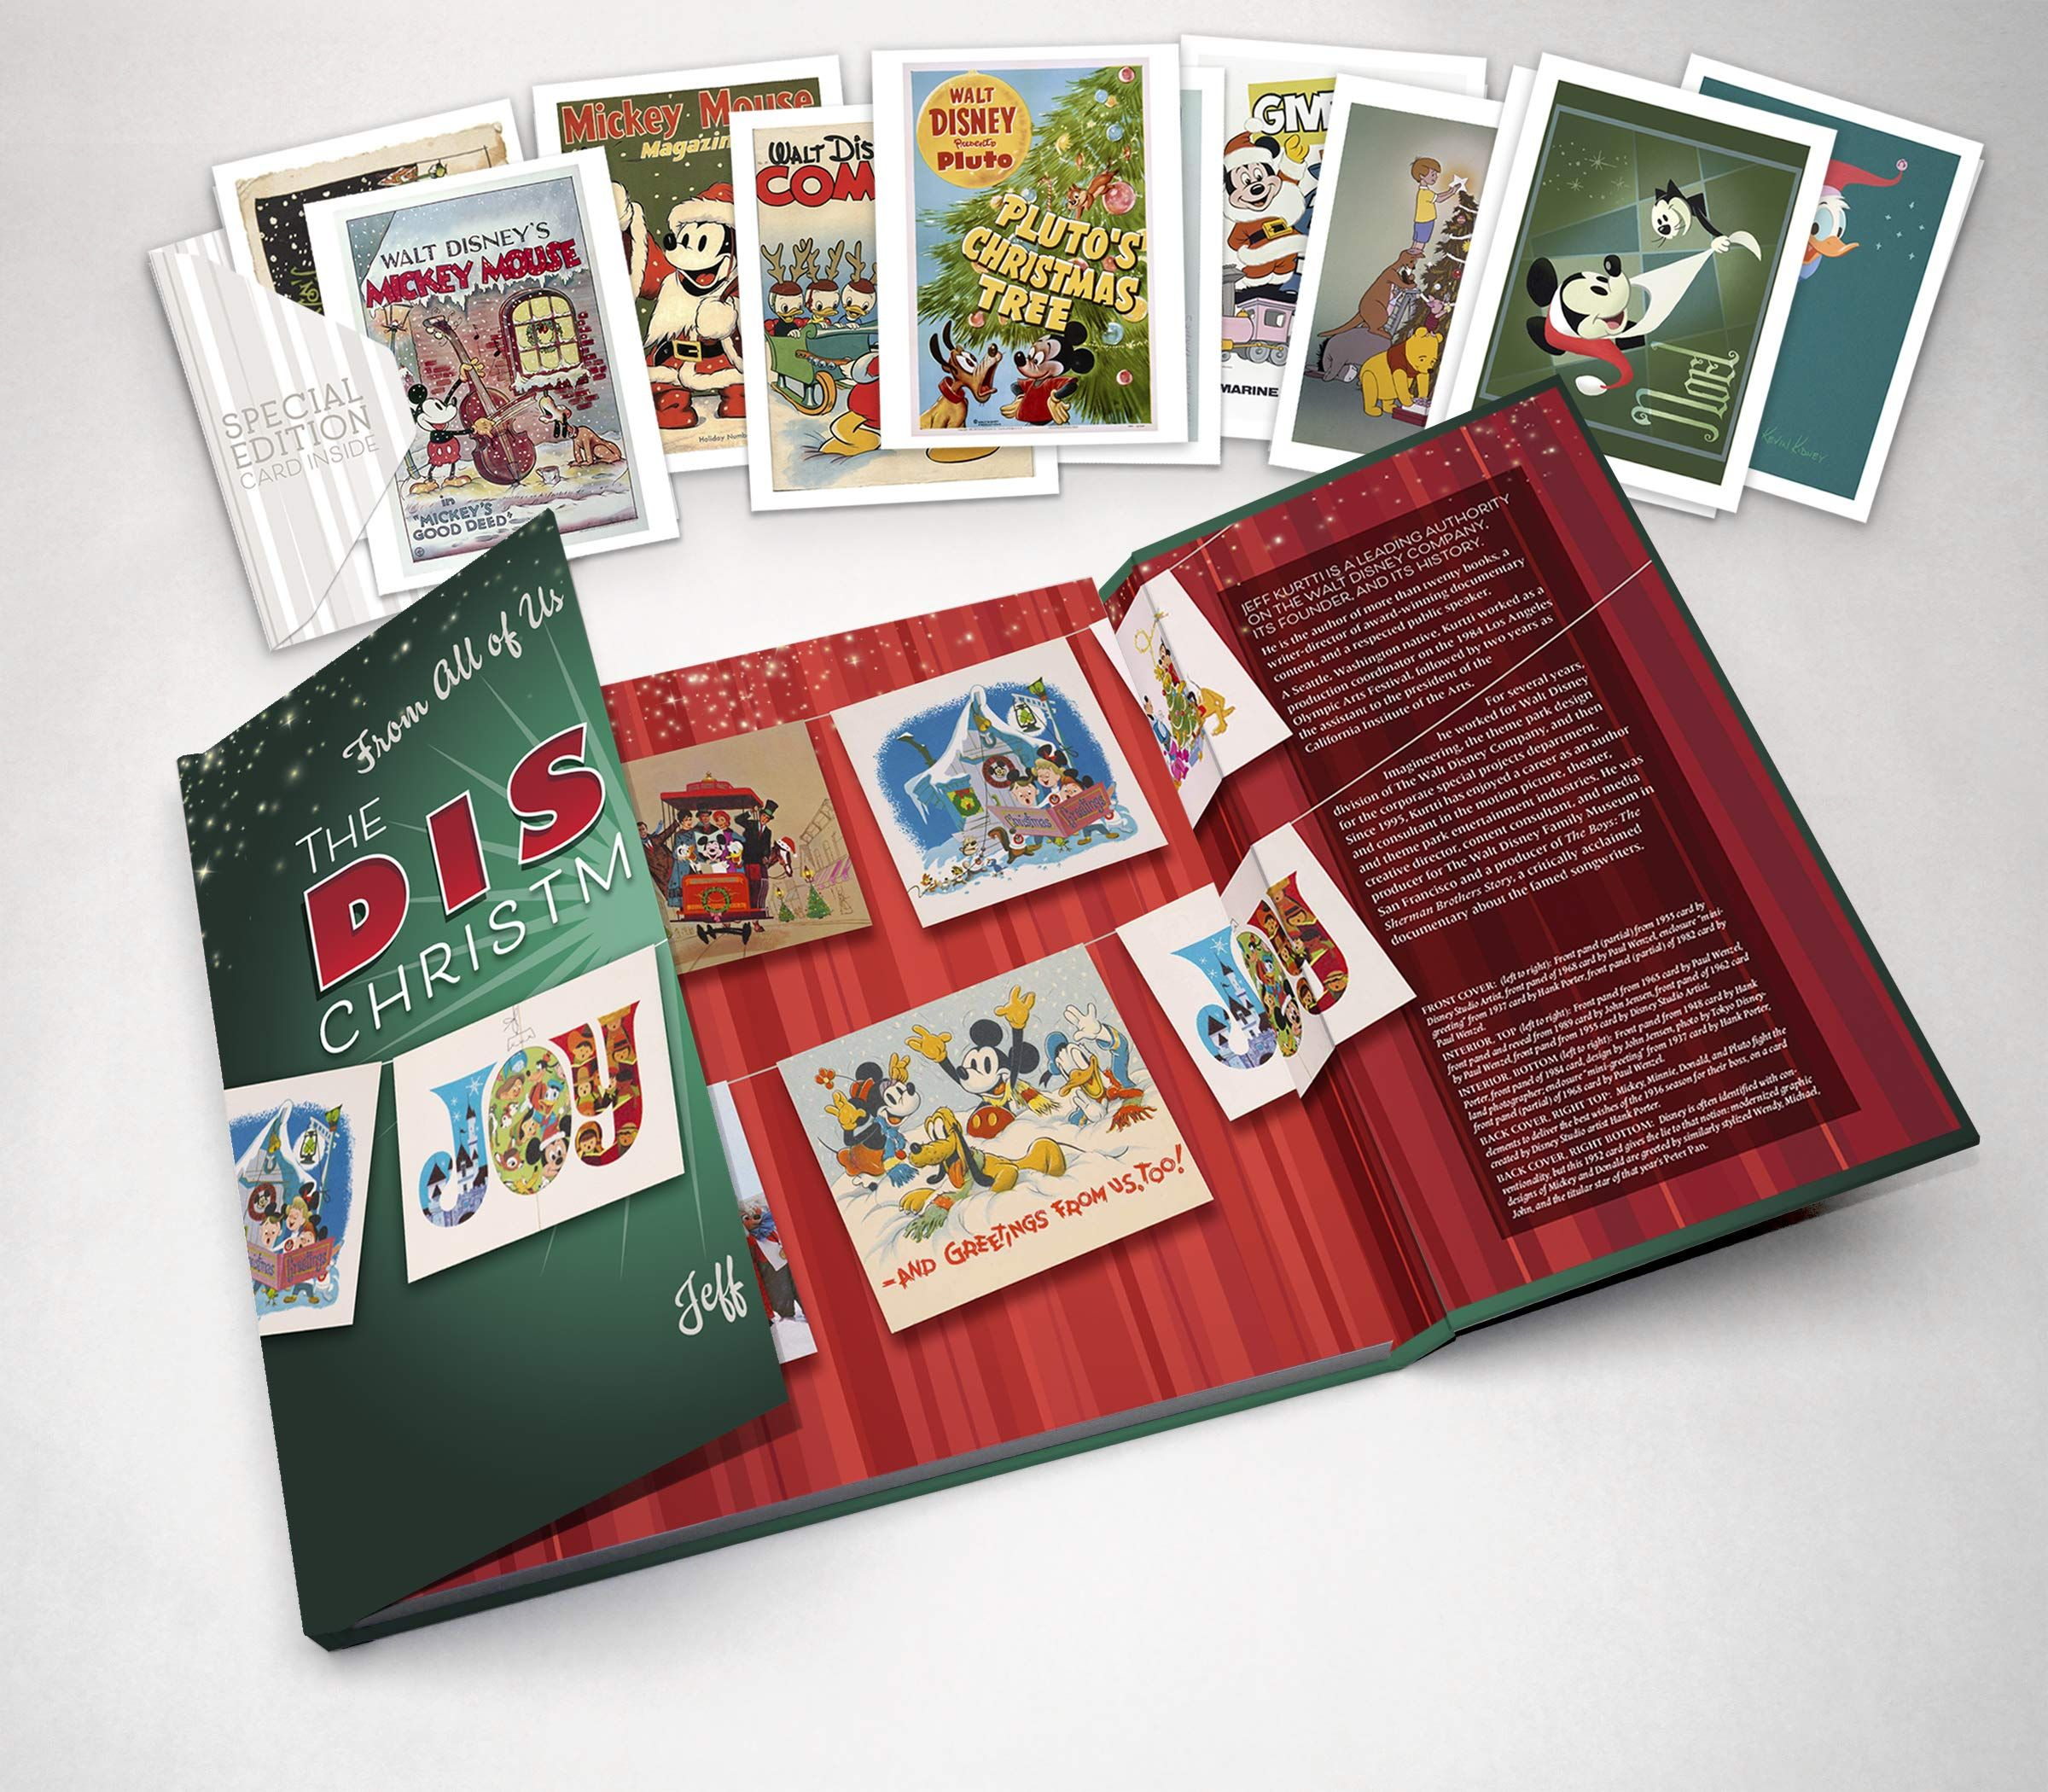 From All Of Us To All Of You The Disney Christmas Card Disney Editions Deluxe Hardcover October 2 2018 Card Edit Disney Christmas Christmas Cards Cards